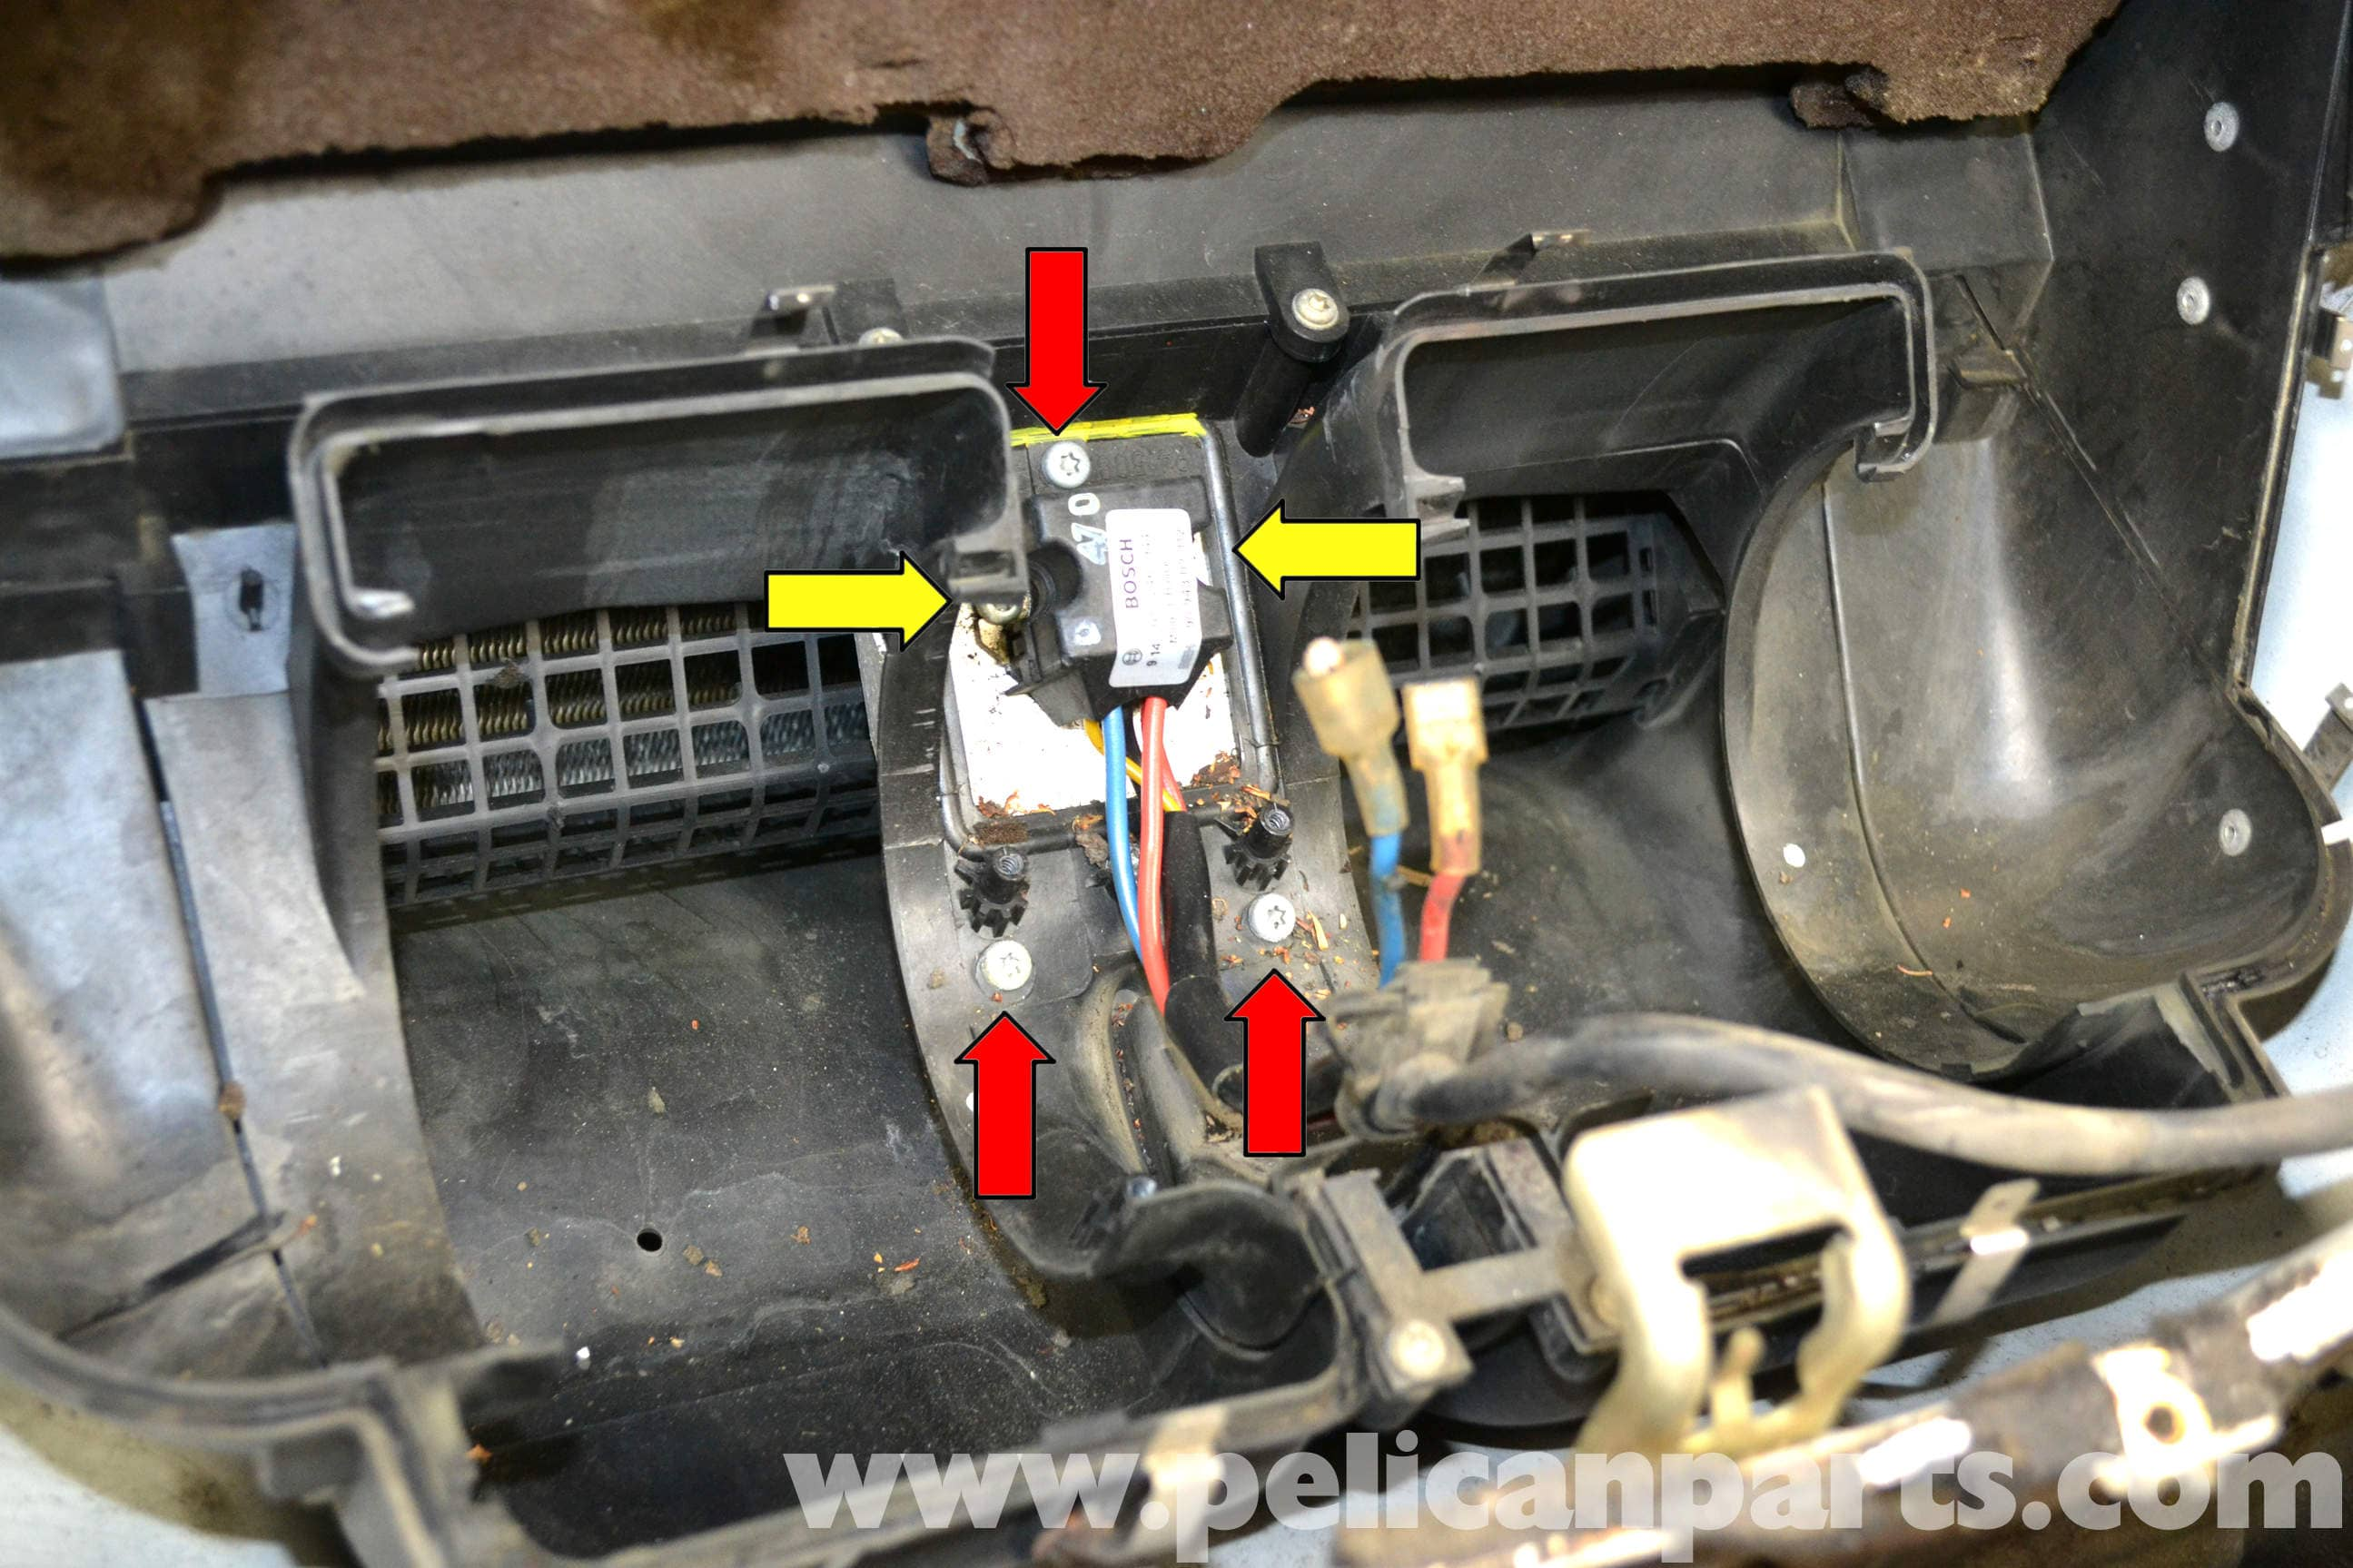 fan center relay wiring diagram scrum agile mercedes-benz w124 hvac resistor replacement | 1986-1995 e-class pelican parts diy maintenance ...